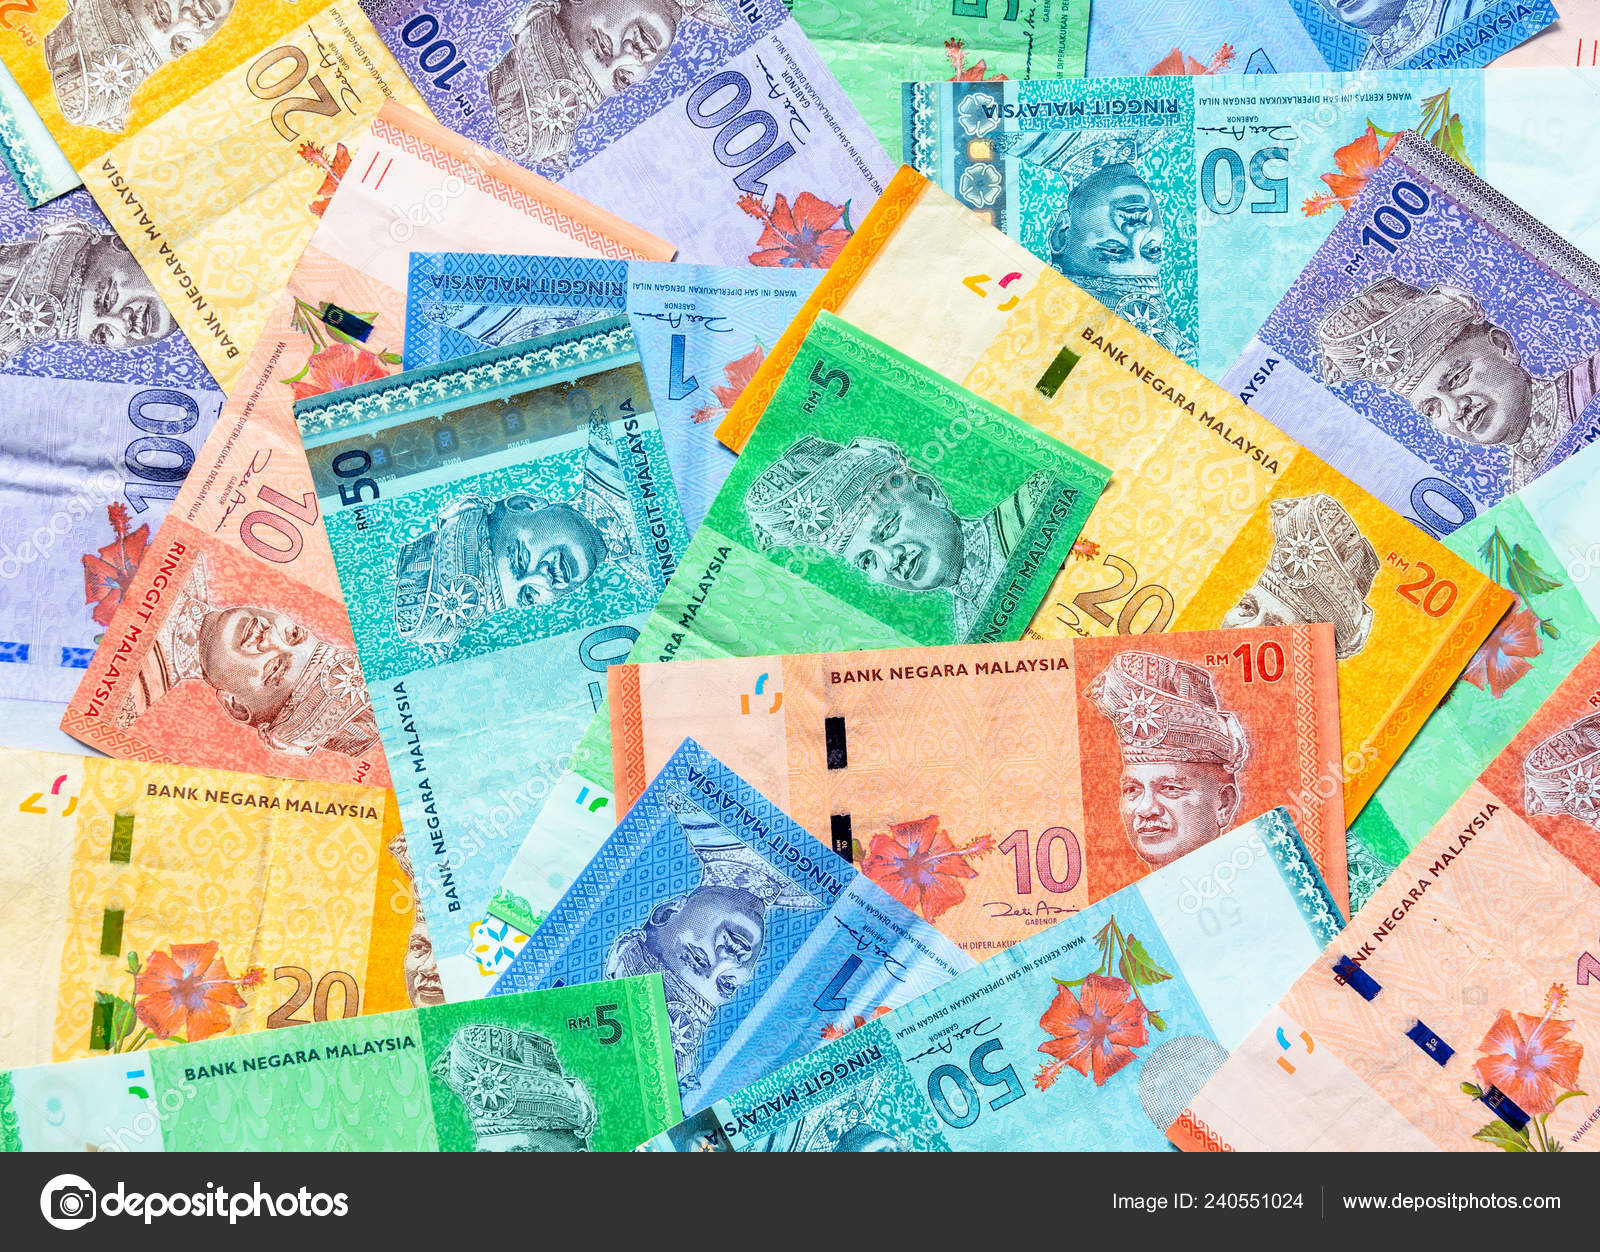 Malaysia Currency Malaysian Ringgit Banknotes Background Paper Money